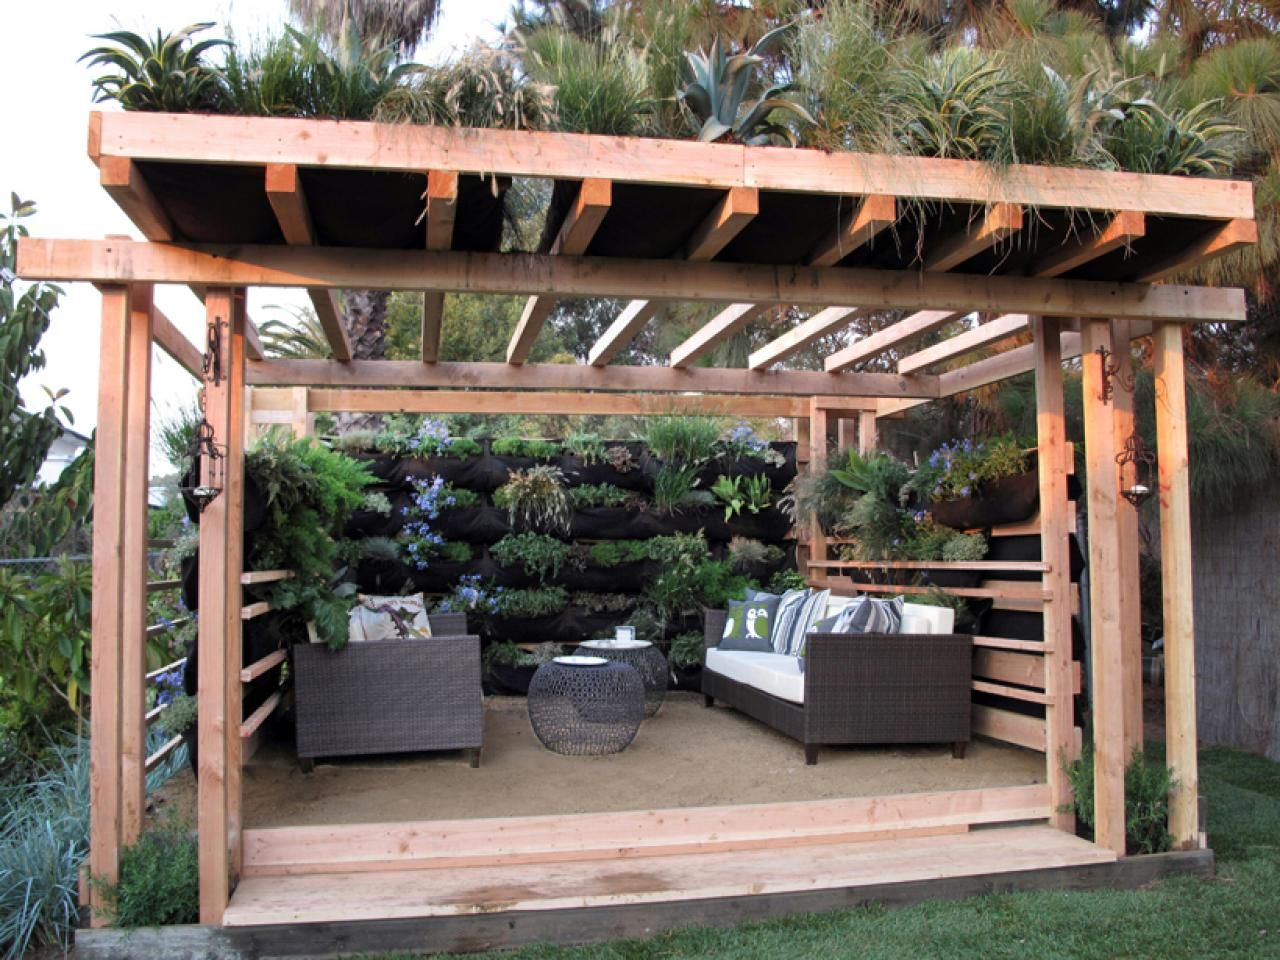 California style outdoor spaces by jamie durie jamie for Jamie durie garden designs